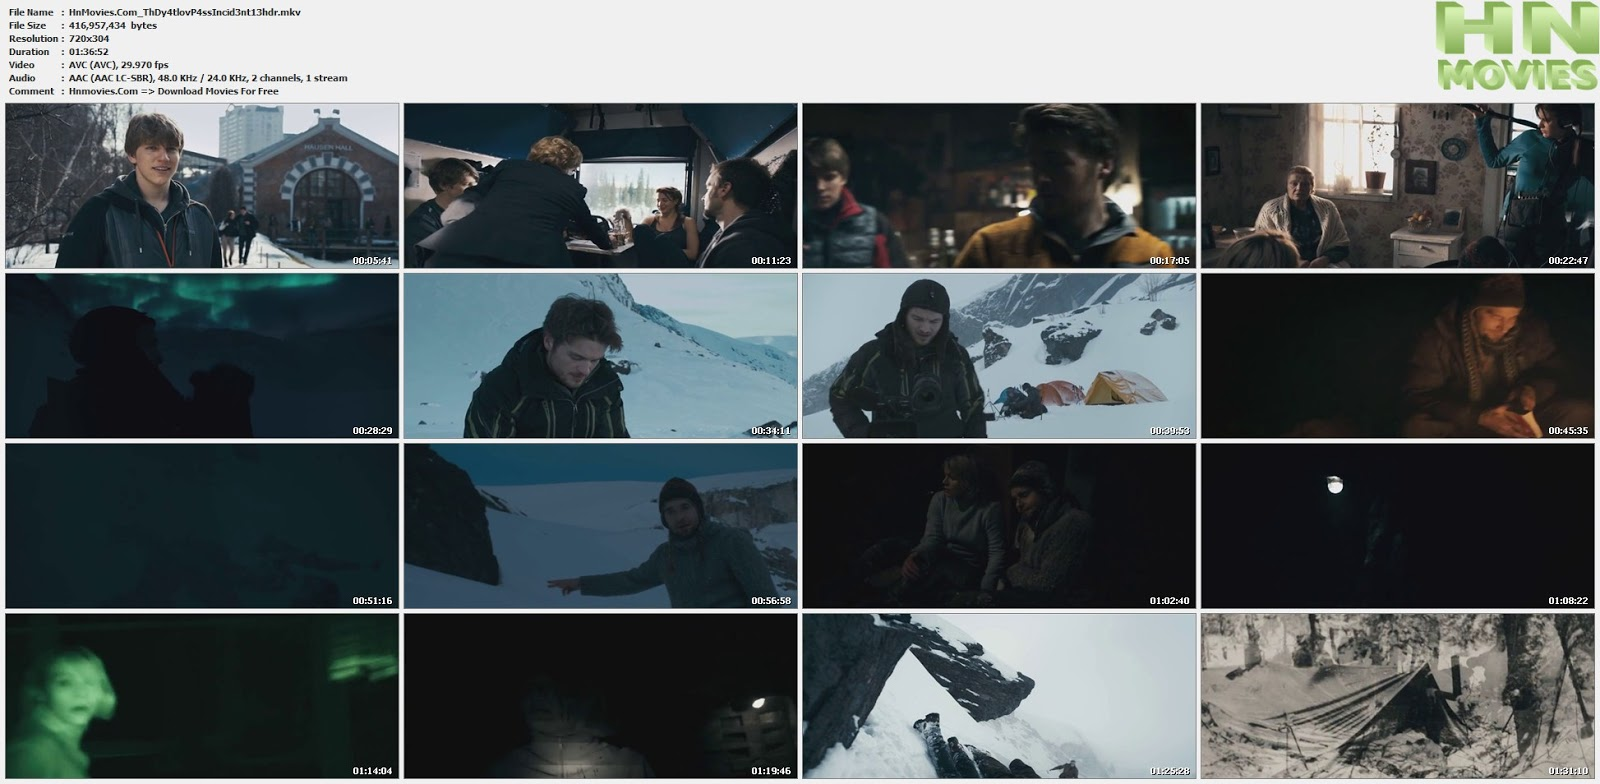 movie screenshot of The Dyatlov Pass Incident fdmovie.com